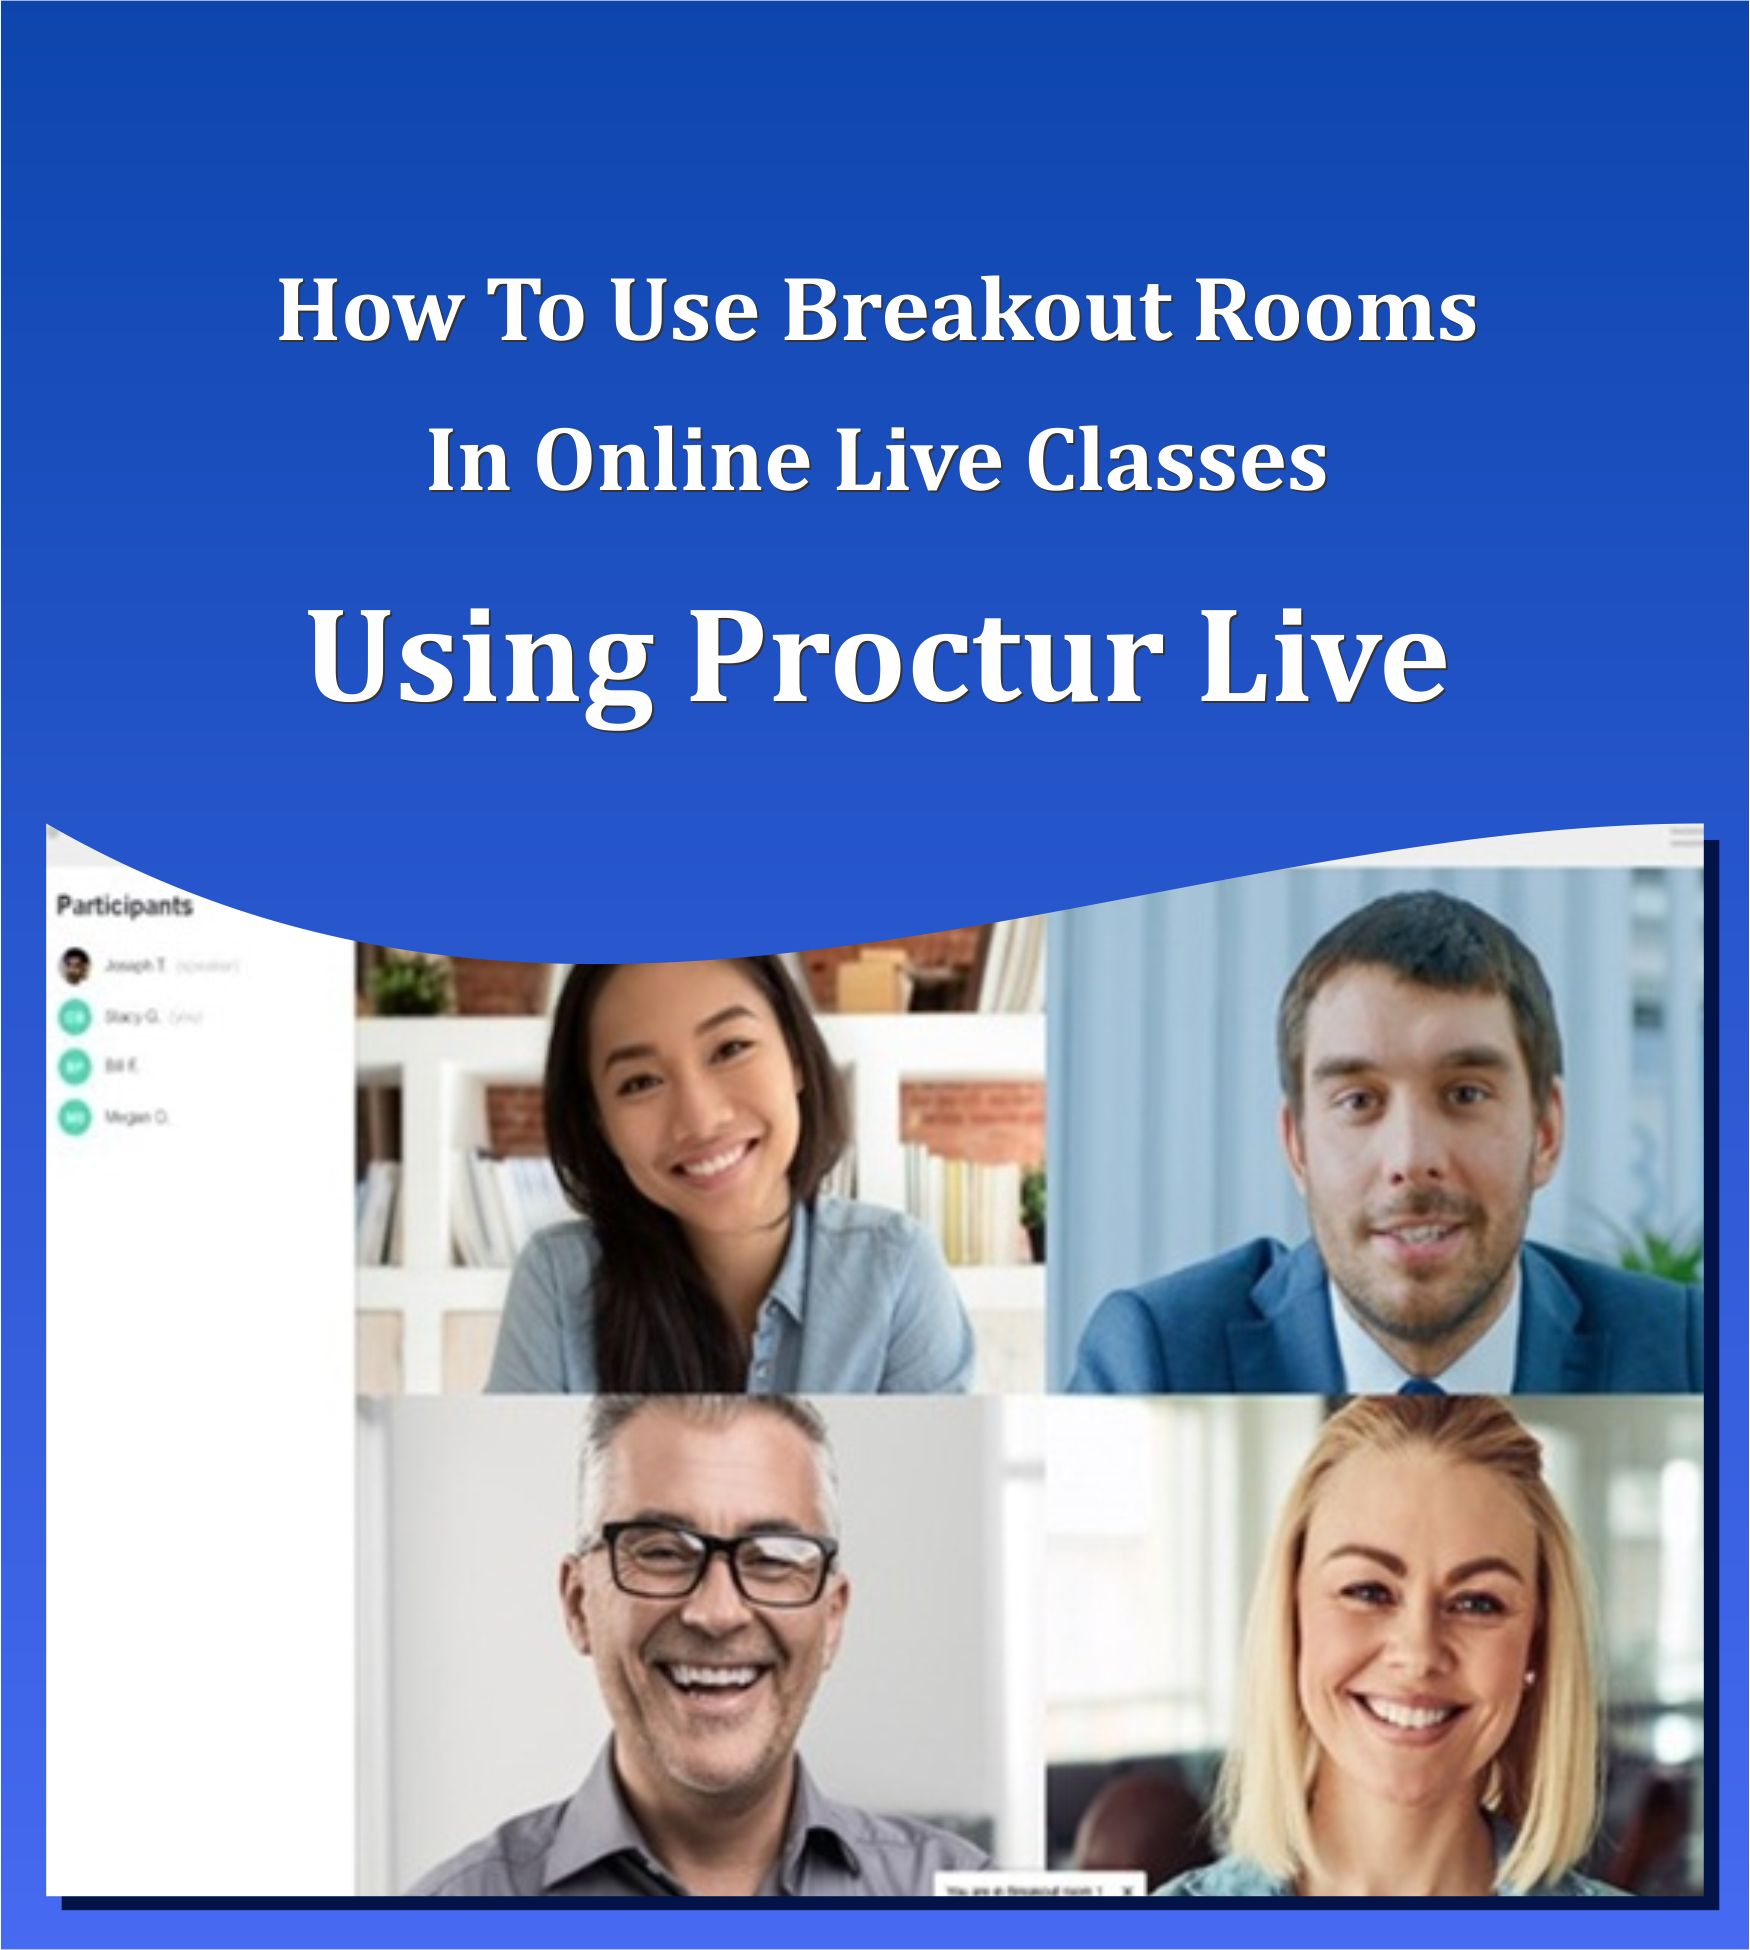 How To Use Breakout Rooms In Online Live Classes Using Proctur Live